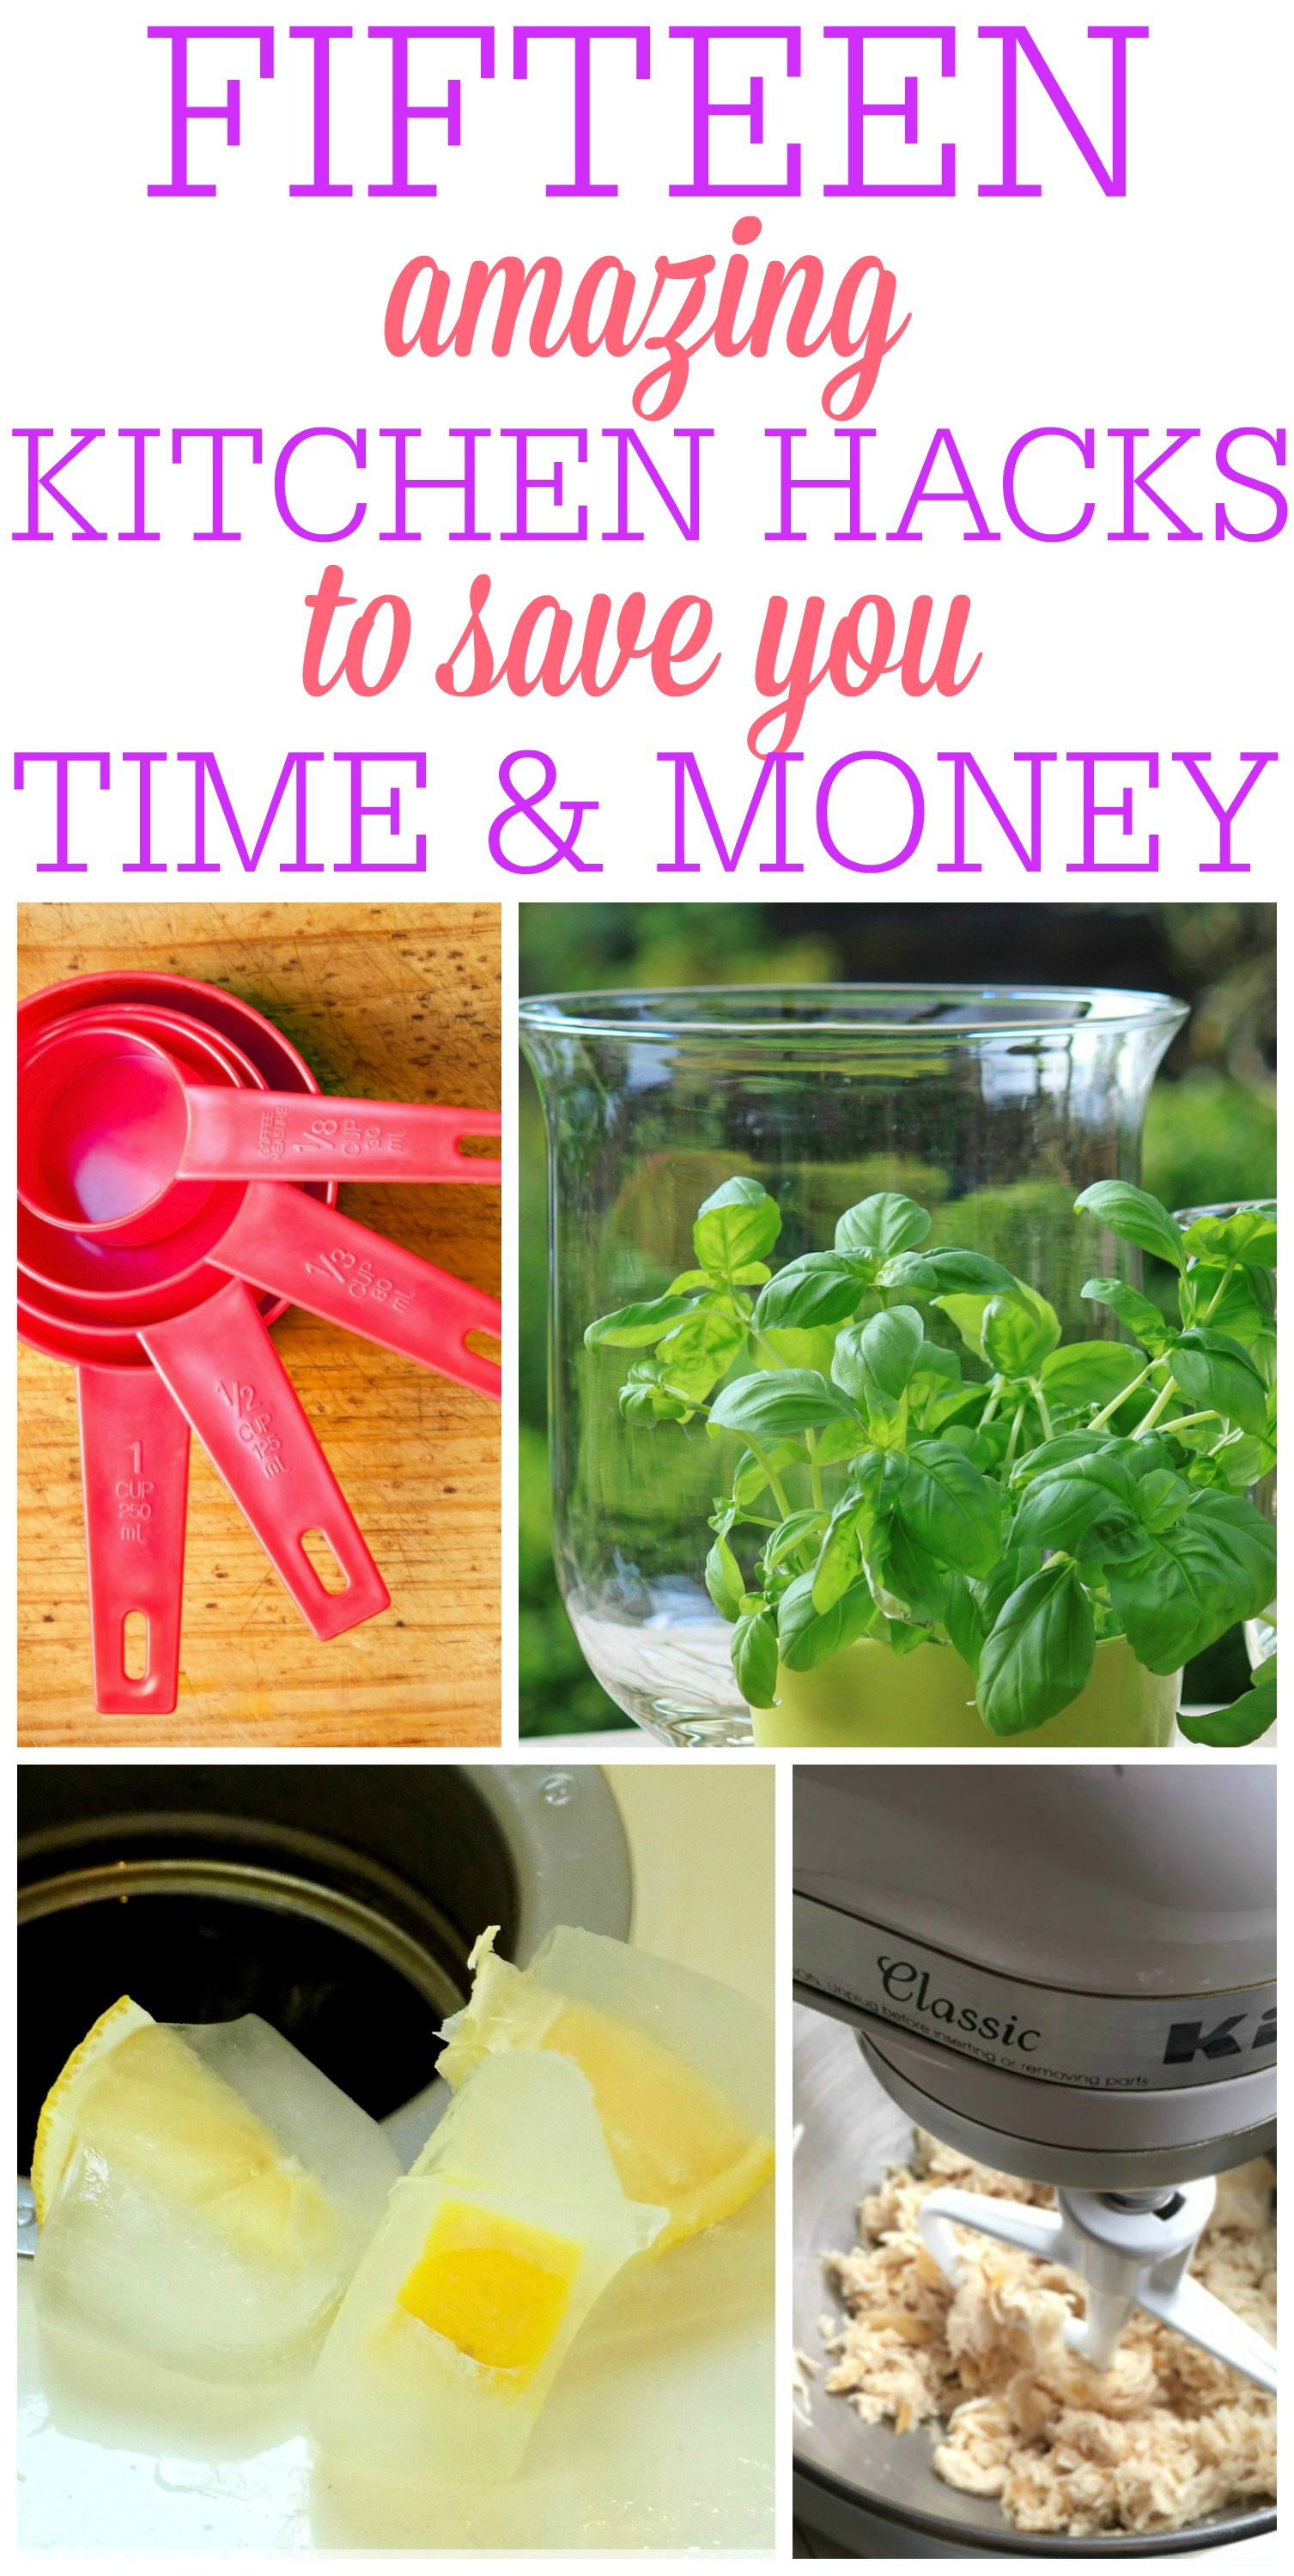 Amazing Kitchen Hacks To Save Time and Money